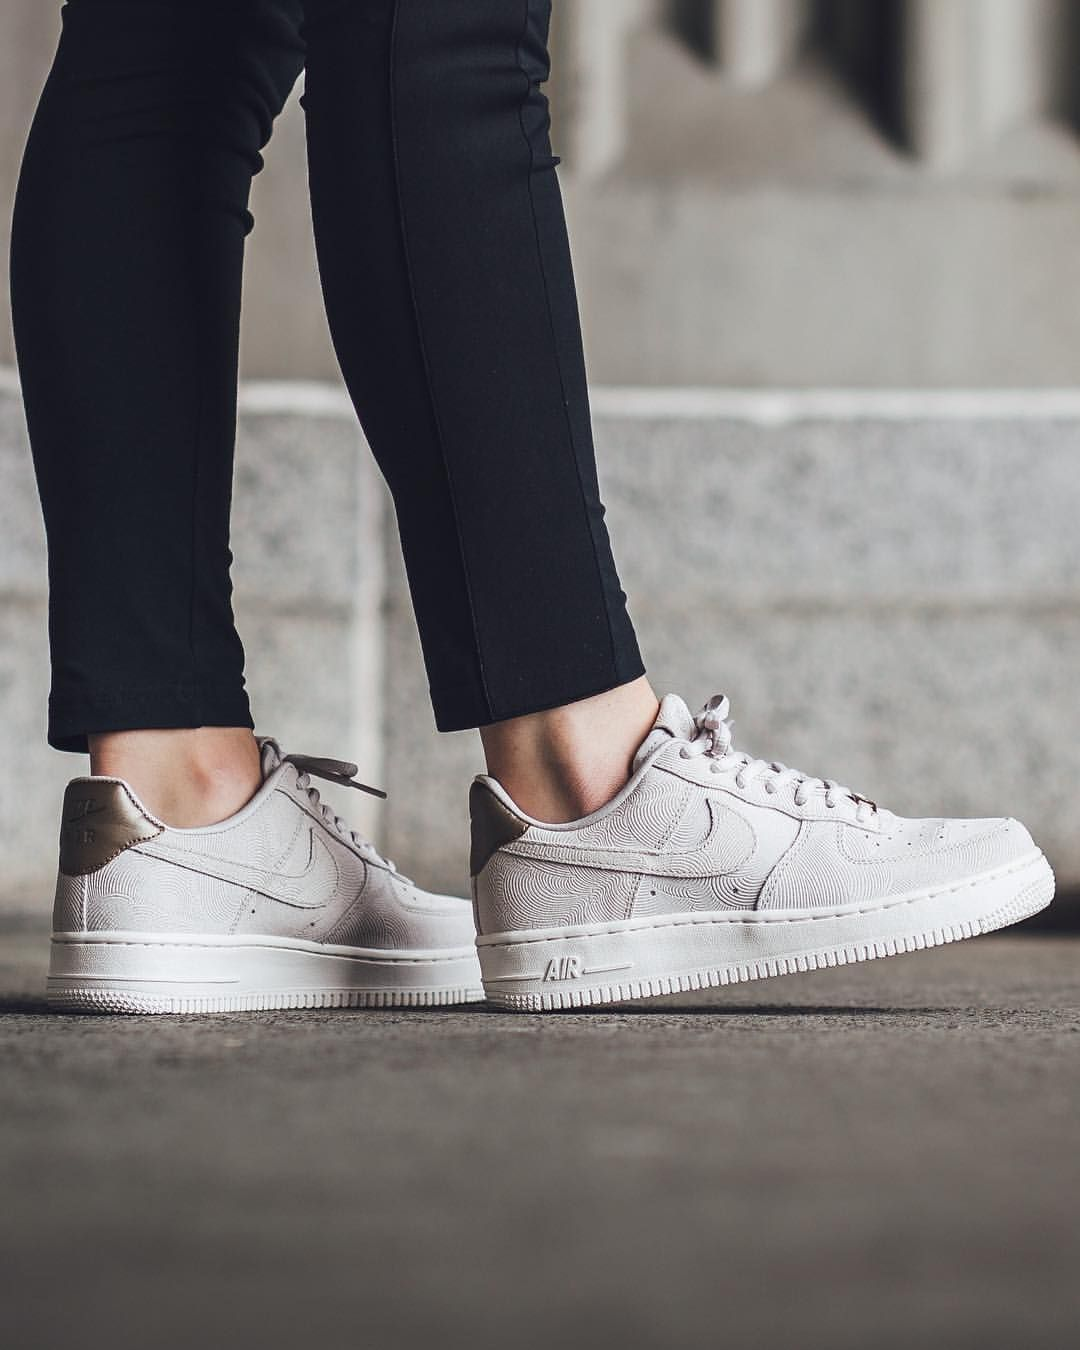 Nike Air Force 1 Faible Boutique En Daim Gris